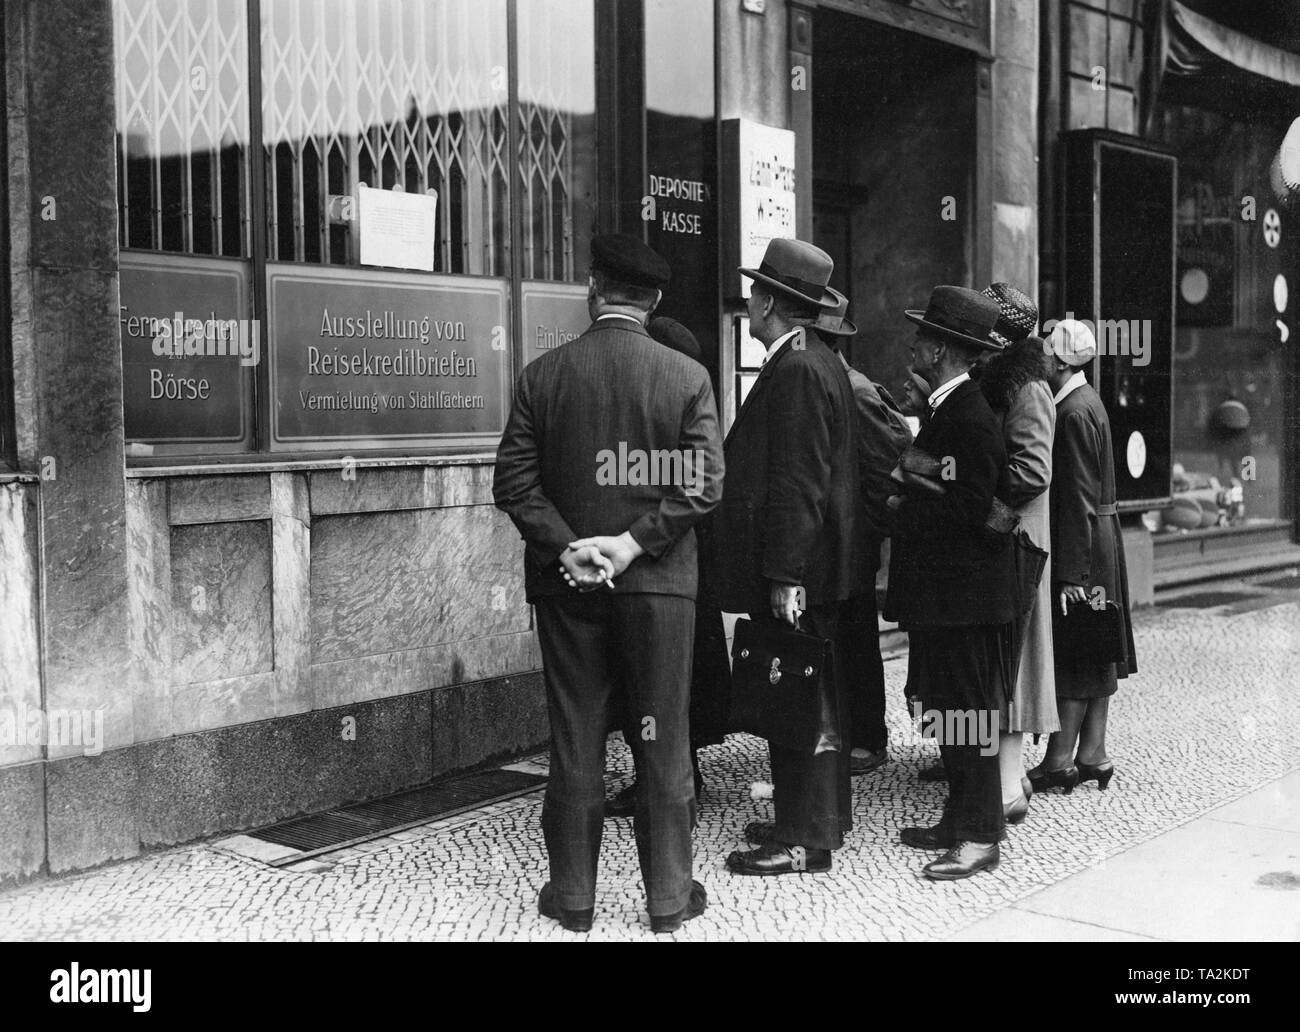 Closed branch of Danat-Bank at the Belle-Alliance-Platz in Berlin. The Darmstaedter und Nationalbank (Danat-Bank), the third largest monetary institution of the Reich, had to stop payment transactions. - Stock Image